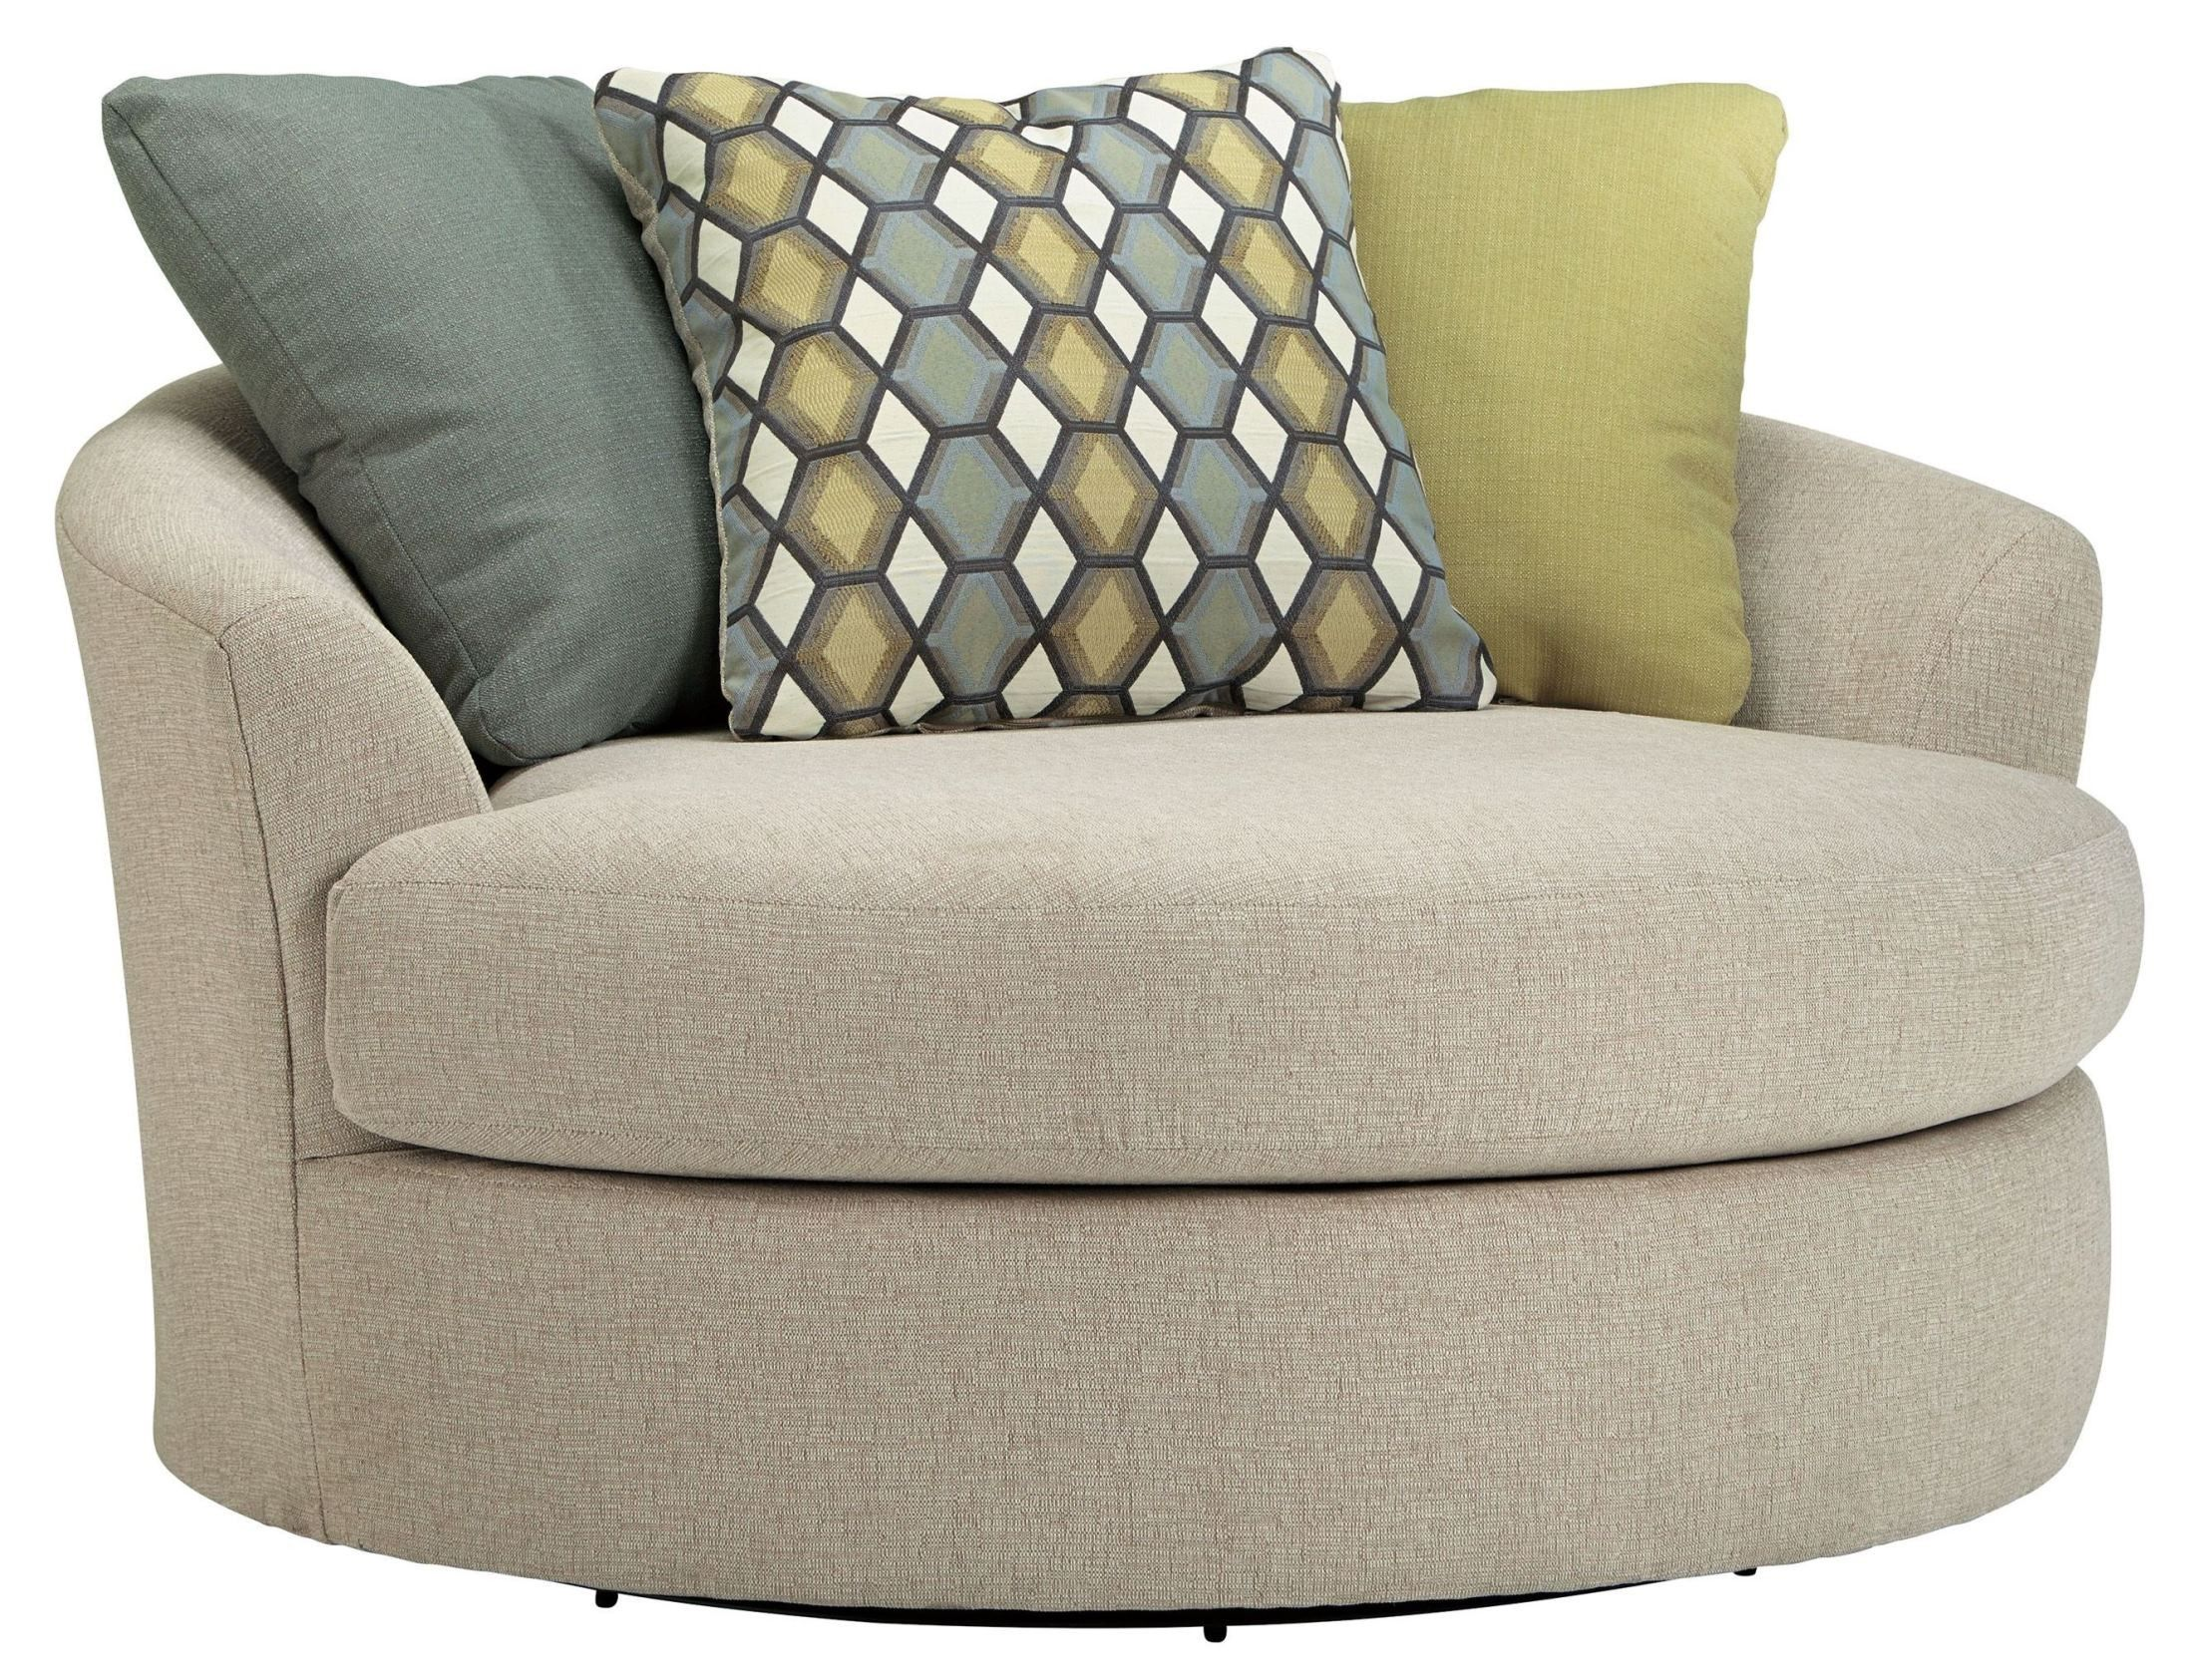 Ashley oversized swivel accent chair - Casheral Linen Oversized Swivel Accent Chair